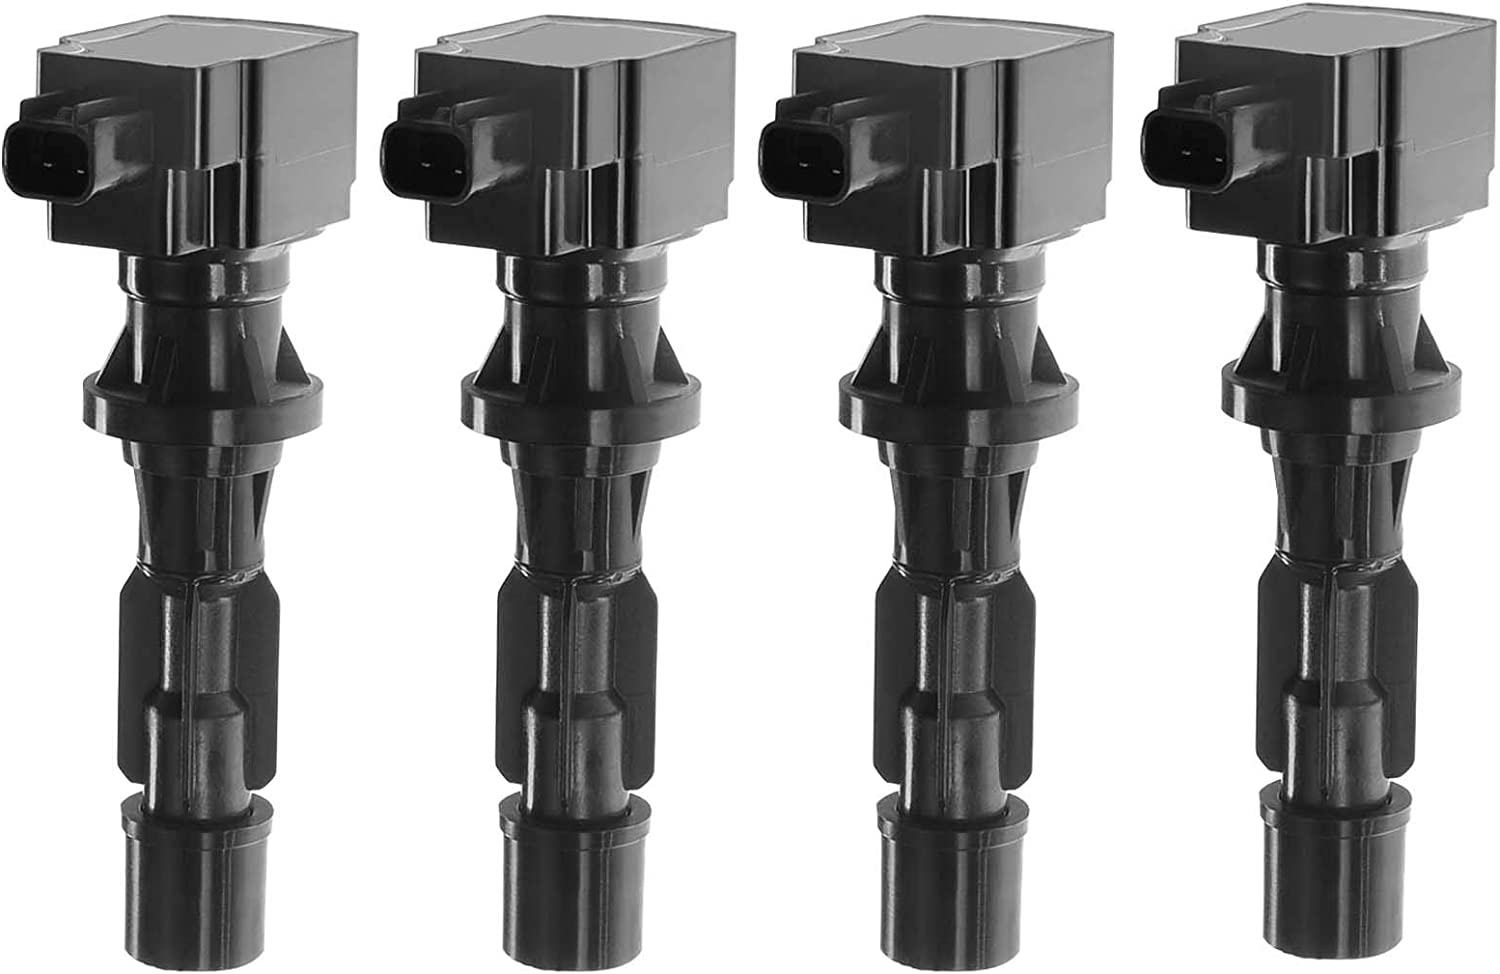 1 year warranty Limited Special Price A-Premium Ignition Coil Pack Compatible with Fusion Mercury Ford